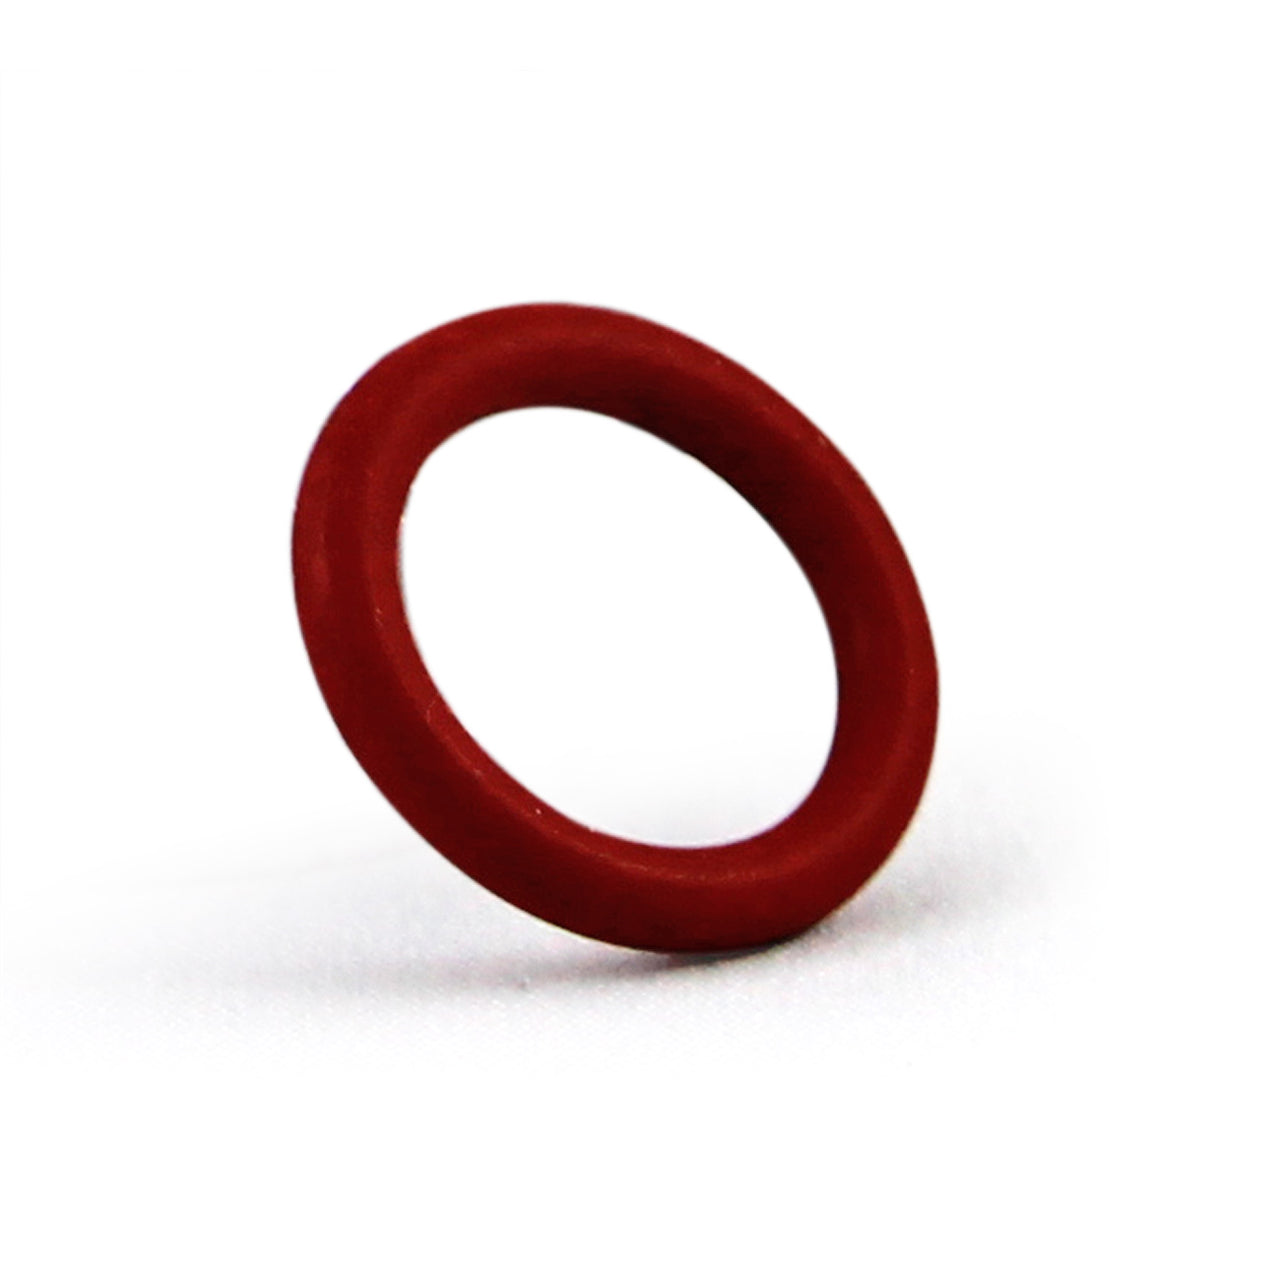 Replacement O-Ring For Nylon Syringe 30Ml - Drug Administration Cattle Boss - Canada